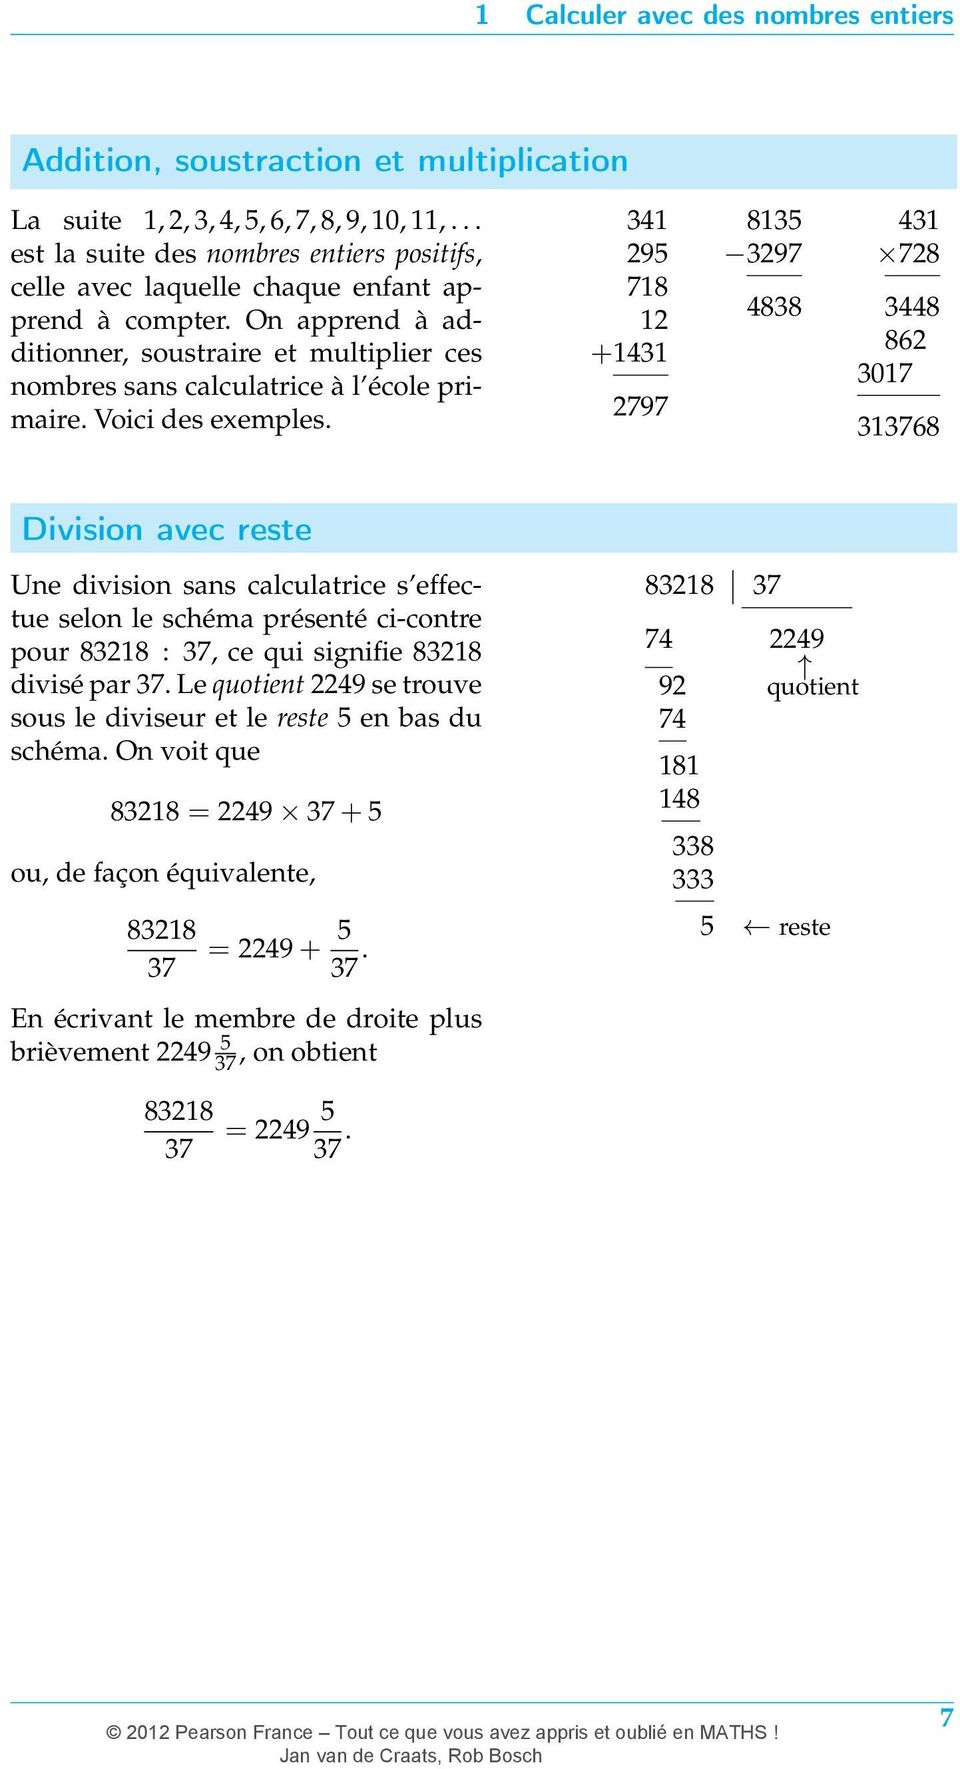 On apprend à additionner, soustraire et multiplier ces nombres sans calculatrice à l école primair Voici des exemples.